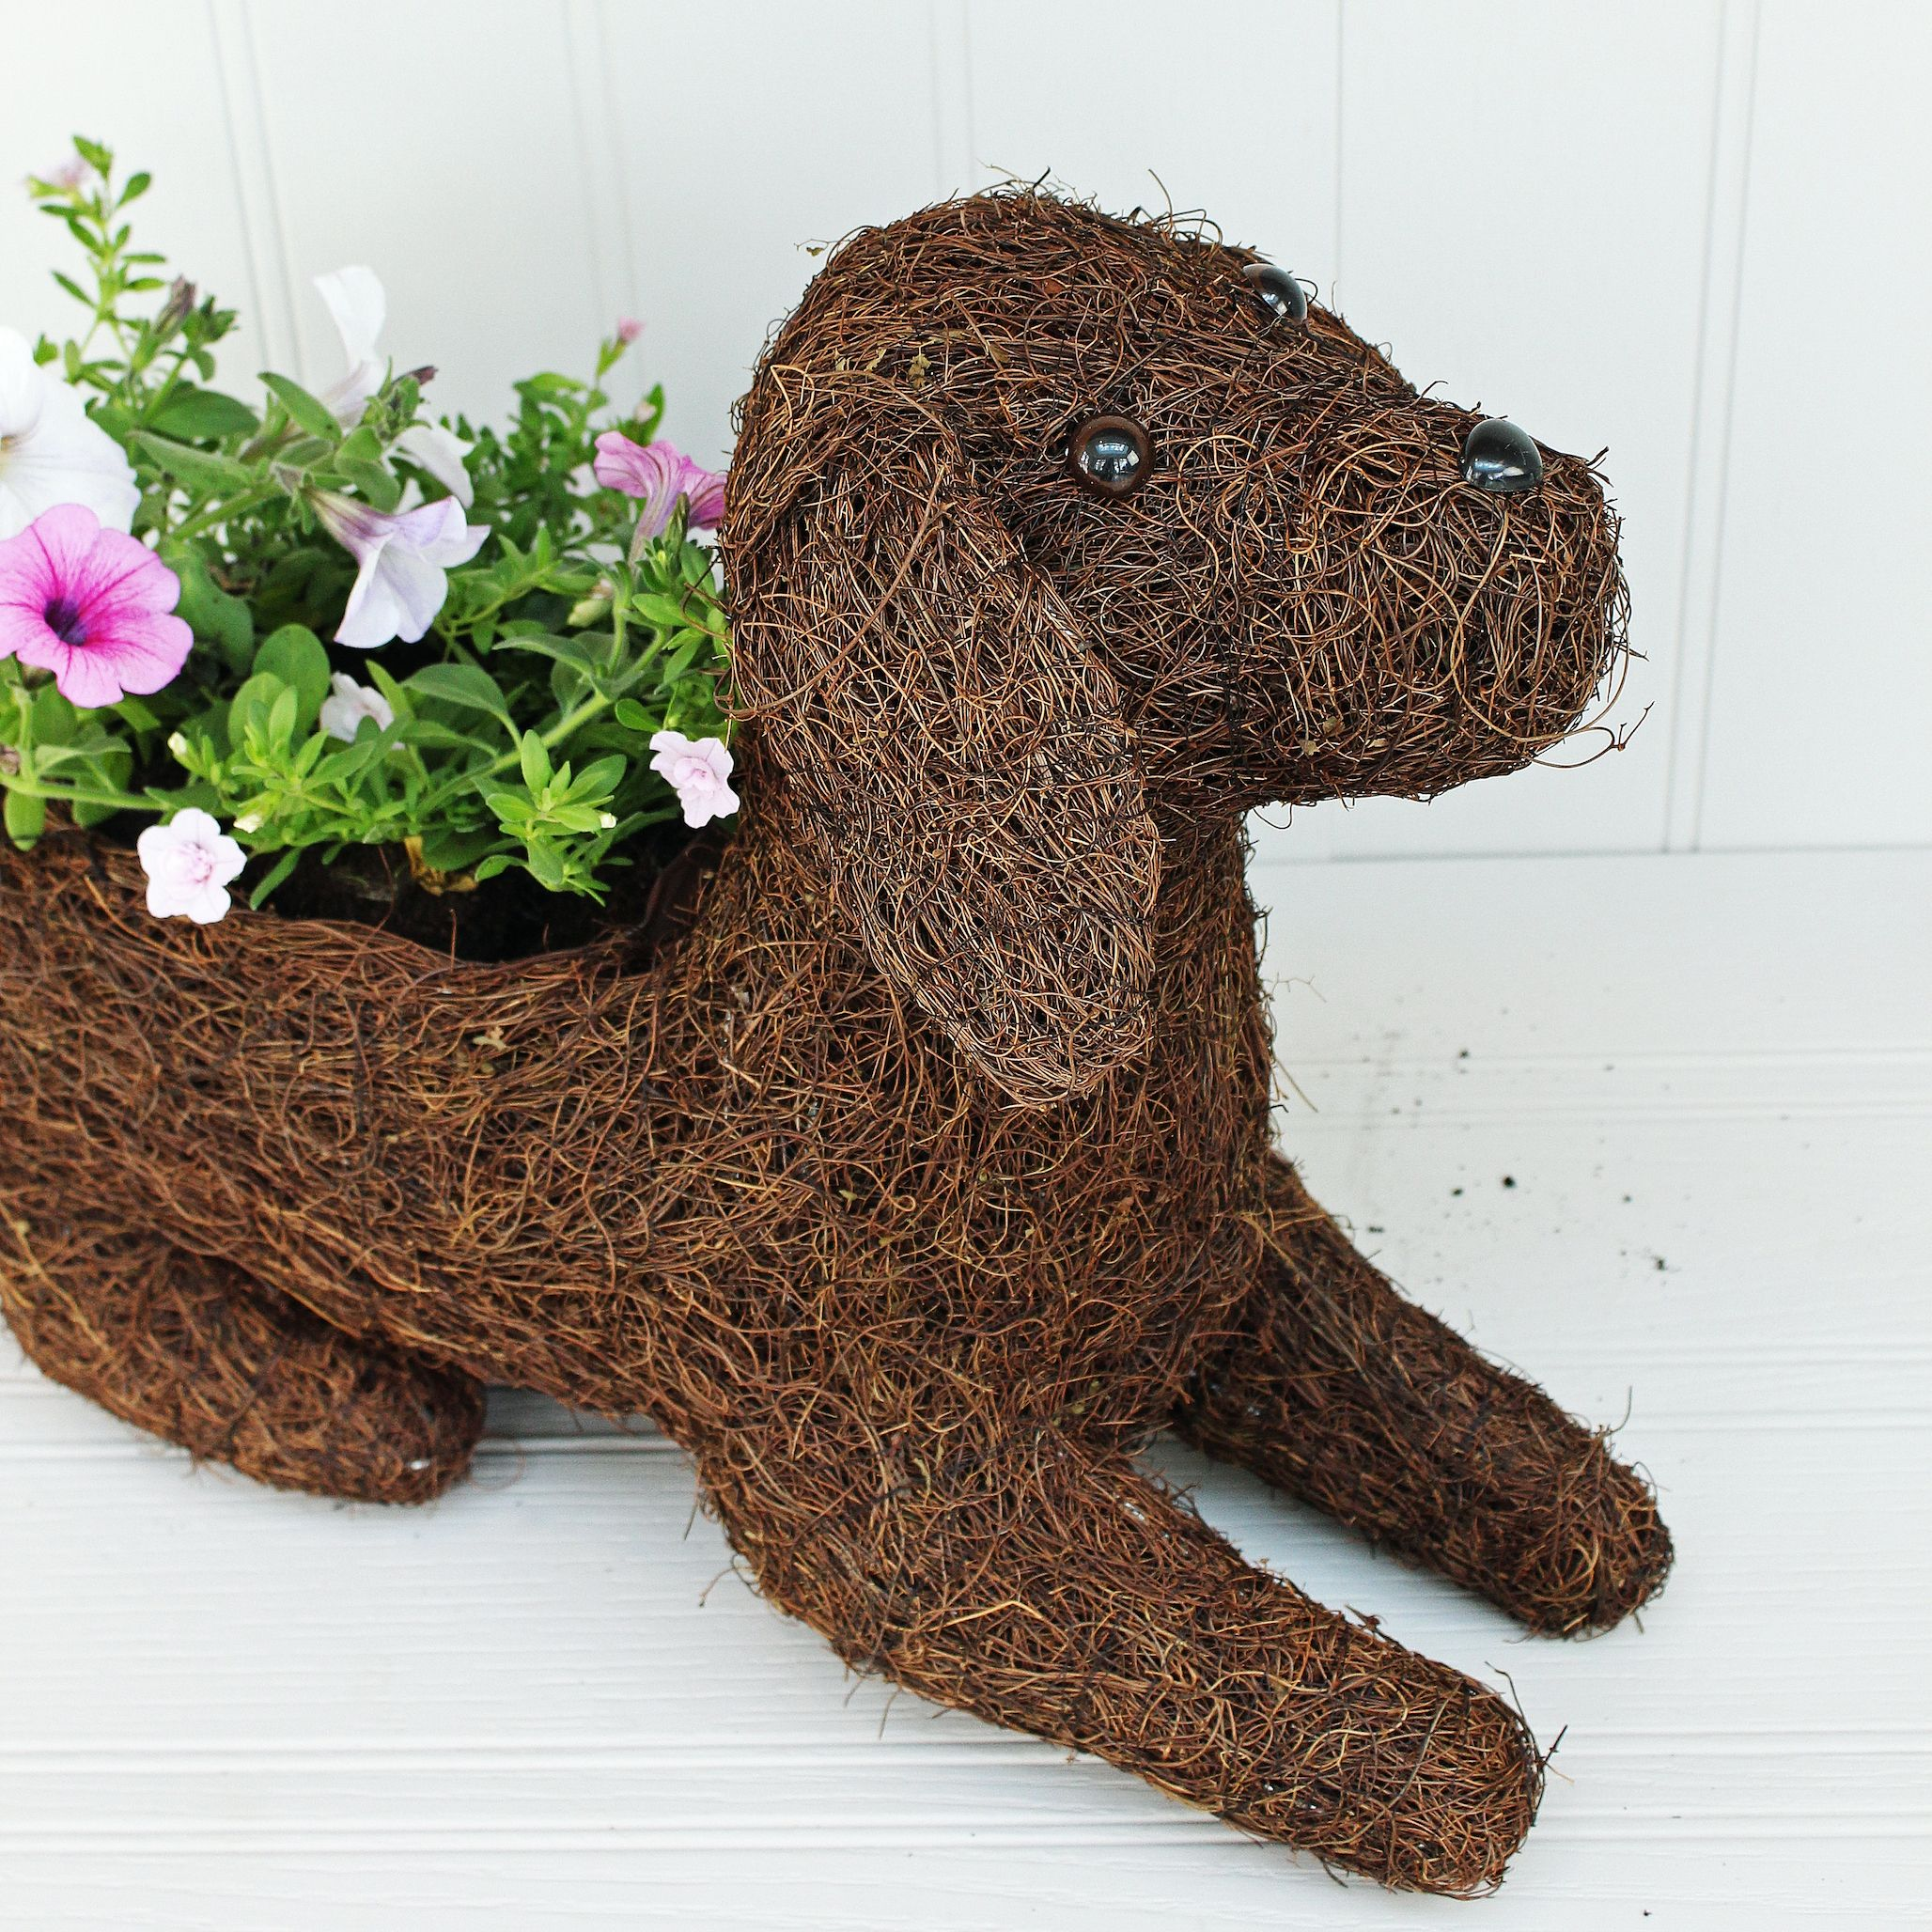 Labrador Puppy Planter